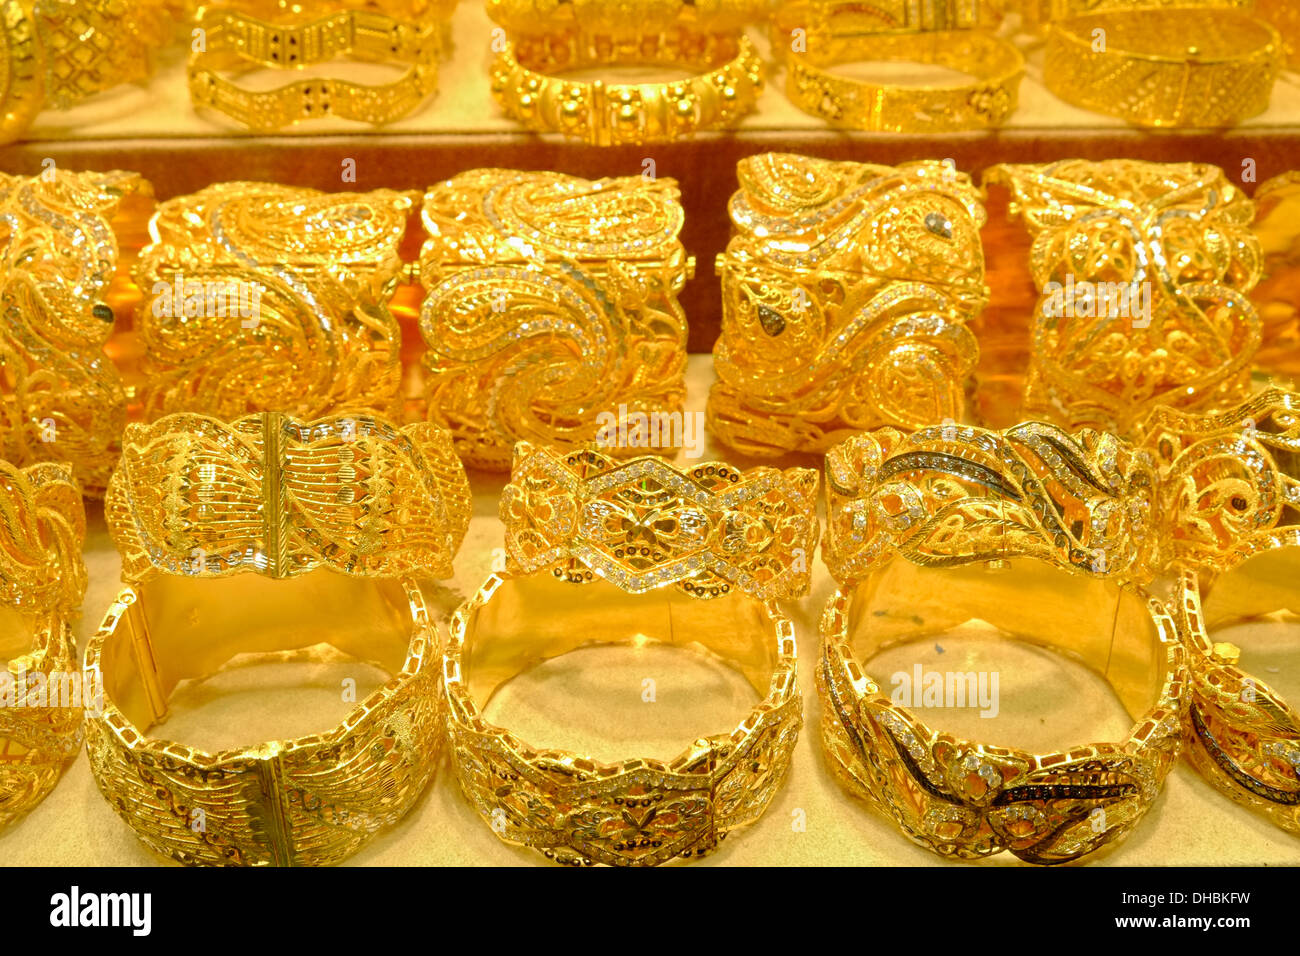 Gold bracelets jewelery for sale in shop in Gold Souk in Deira district of  Dubai United Arab Emirates aaf46bcc0694